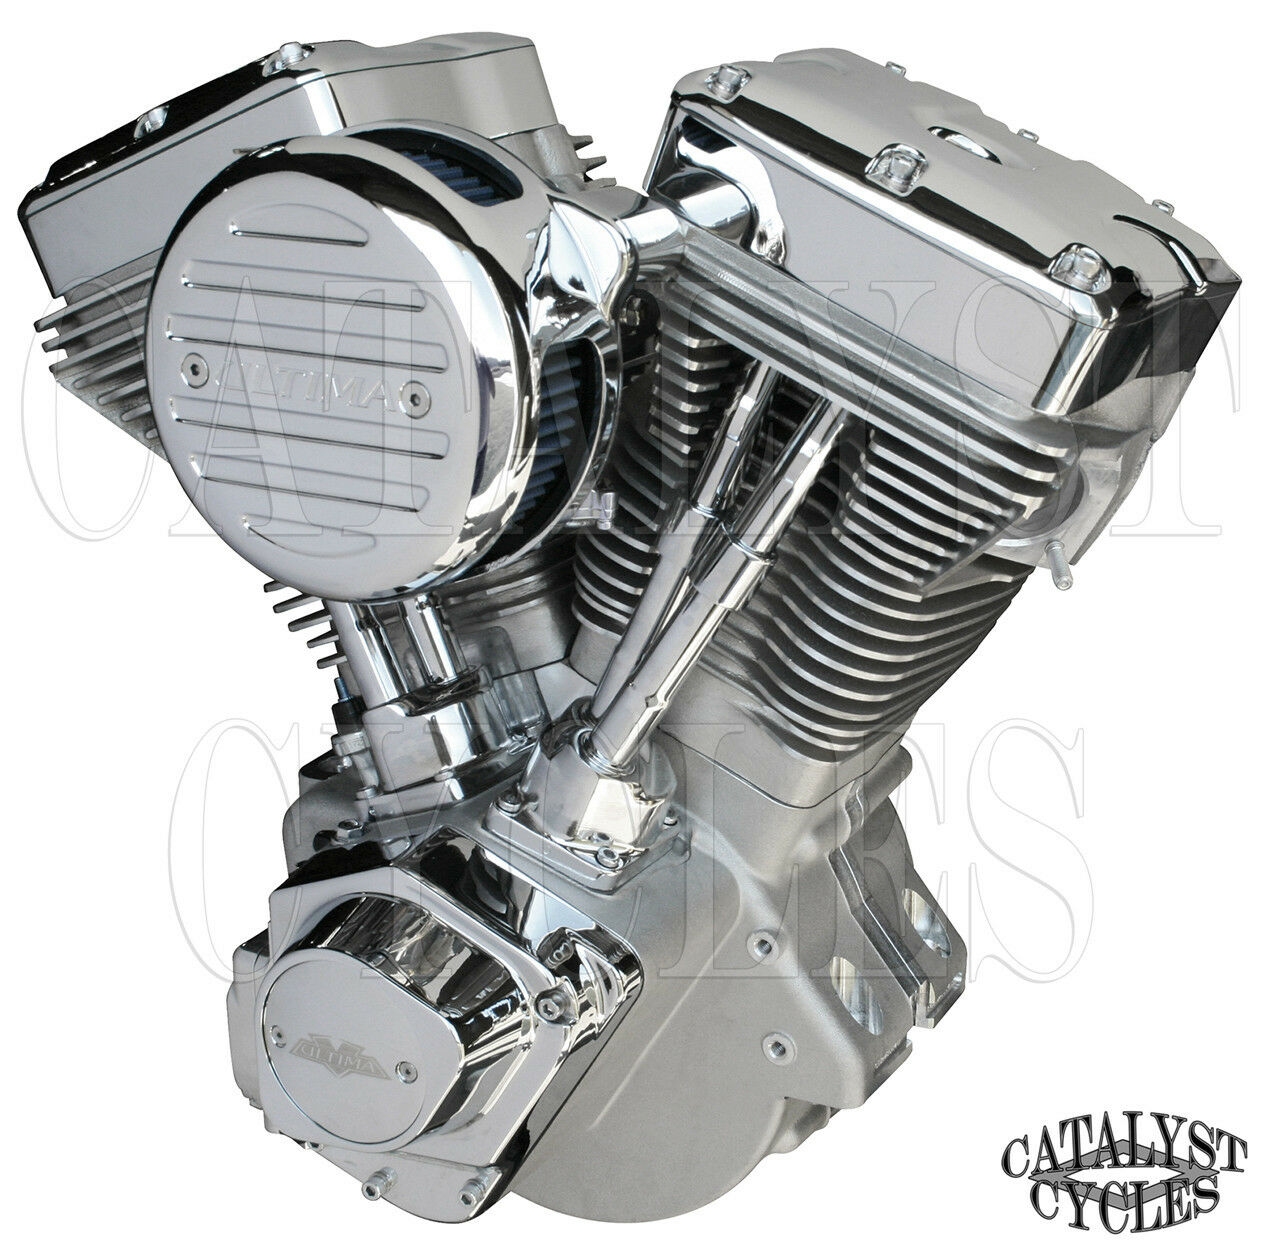 Natural 113 Ultima Engine El Bruto Evolution Motor For Harley Evo Motorcycle Drawing Vquad And Method 84 99 1 Of 1only 2 Available See More